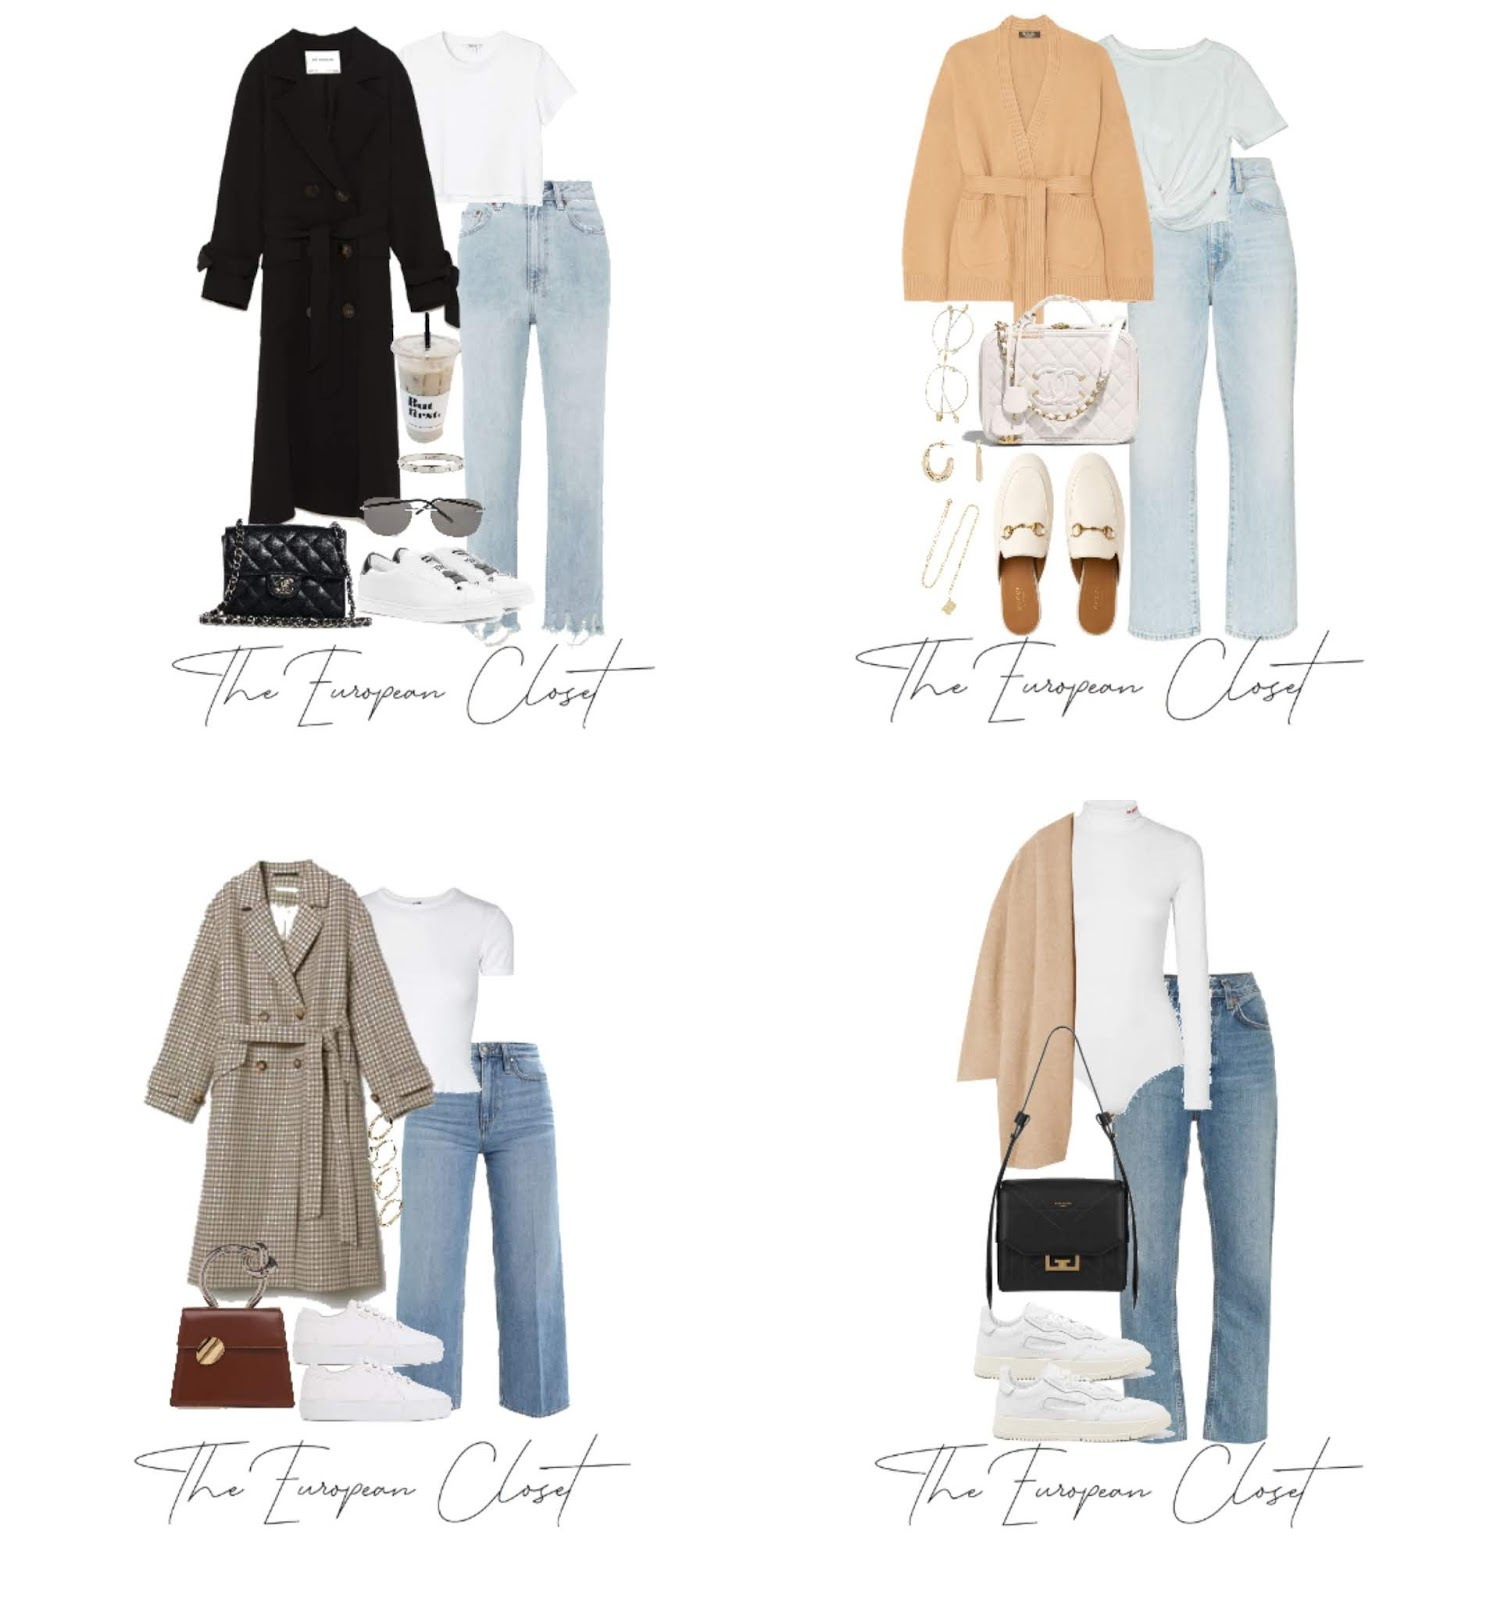 We're at that time of the year where the weather is pretty unpredictable.You'll feel cold in the morning and look like a sweaty mess by 2 pm. Well I'm here to help: here are 12 easy transitional outfits. #fashion #transitionaloutfits #autumnfashion